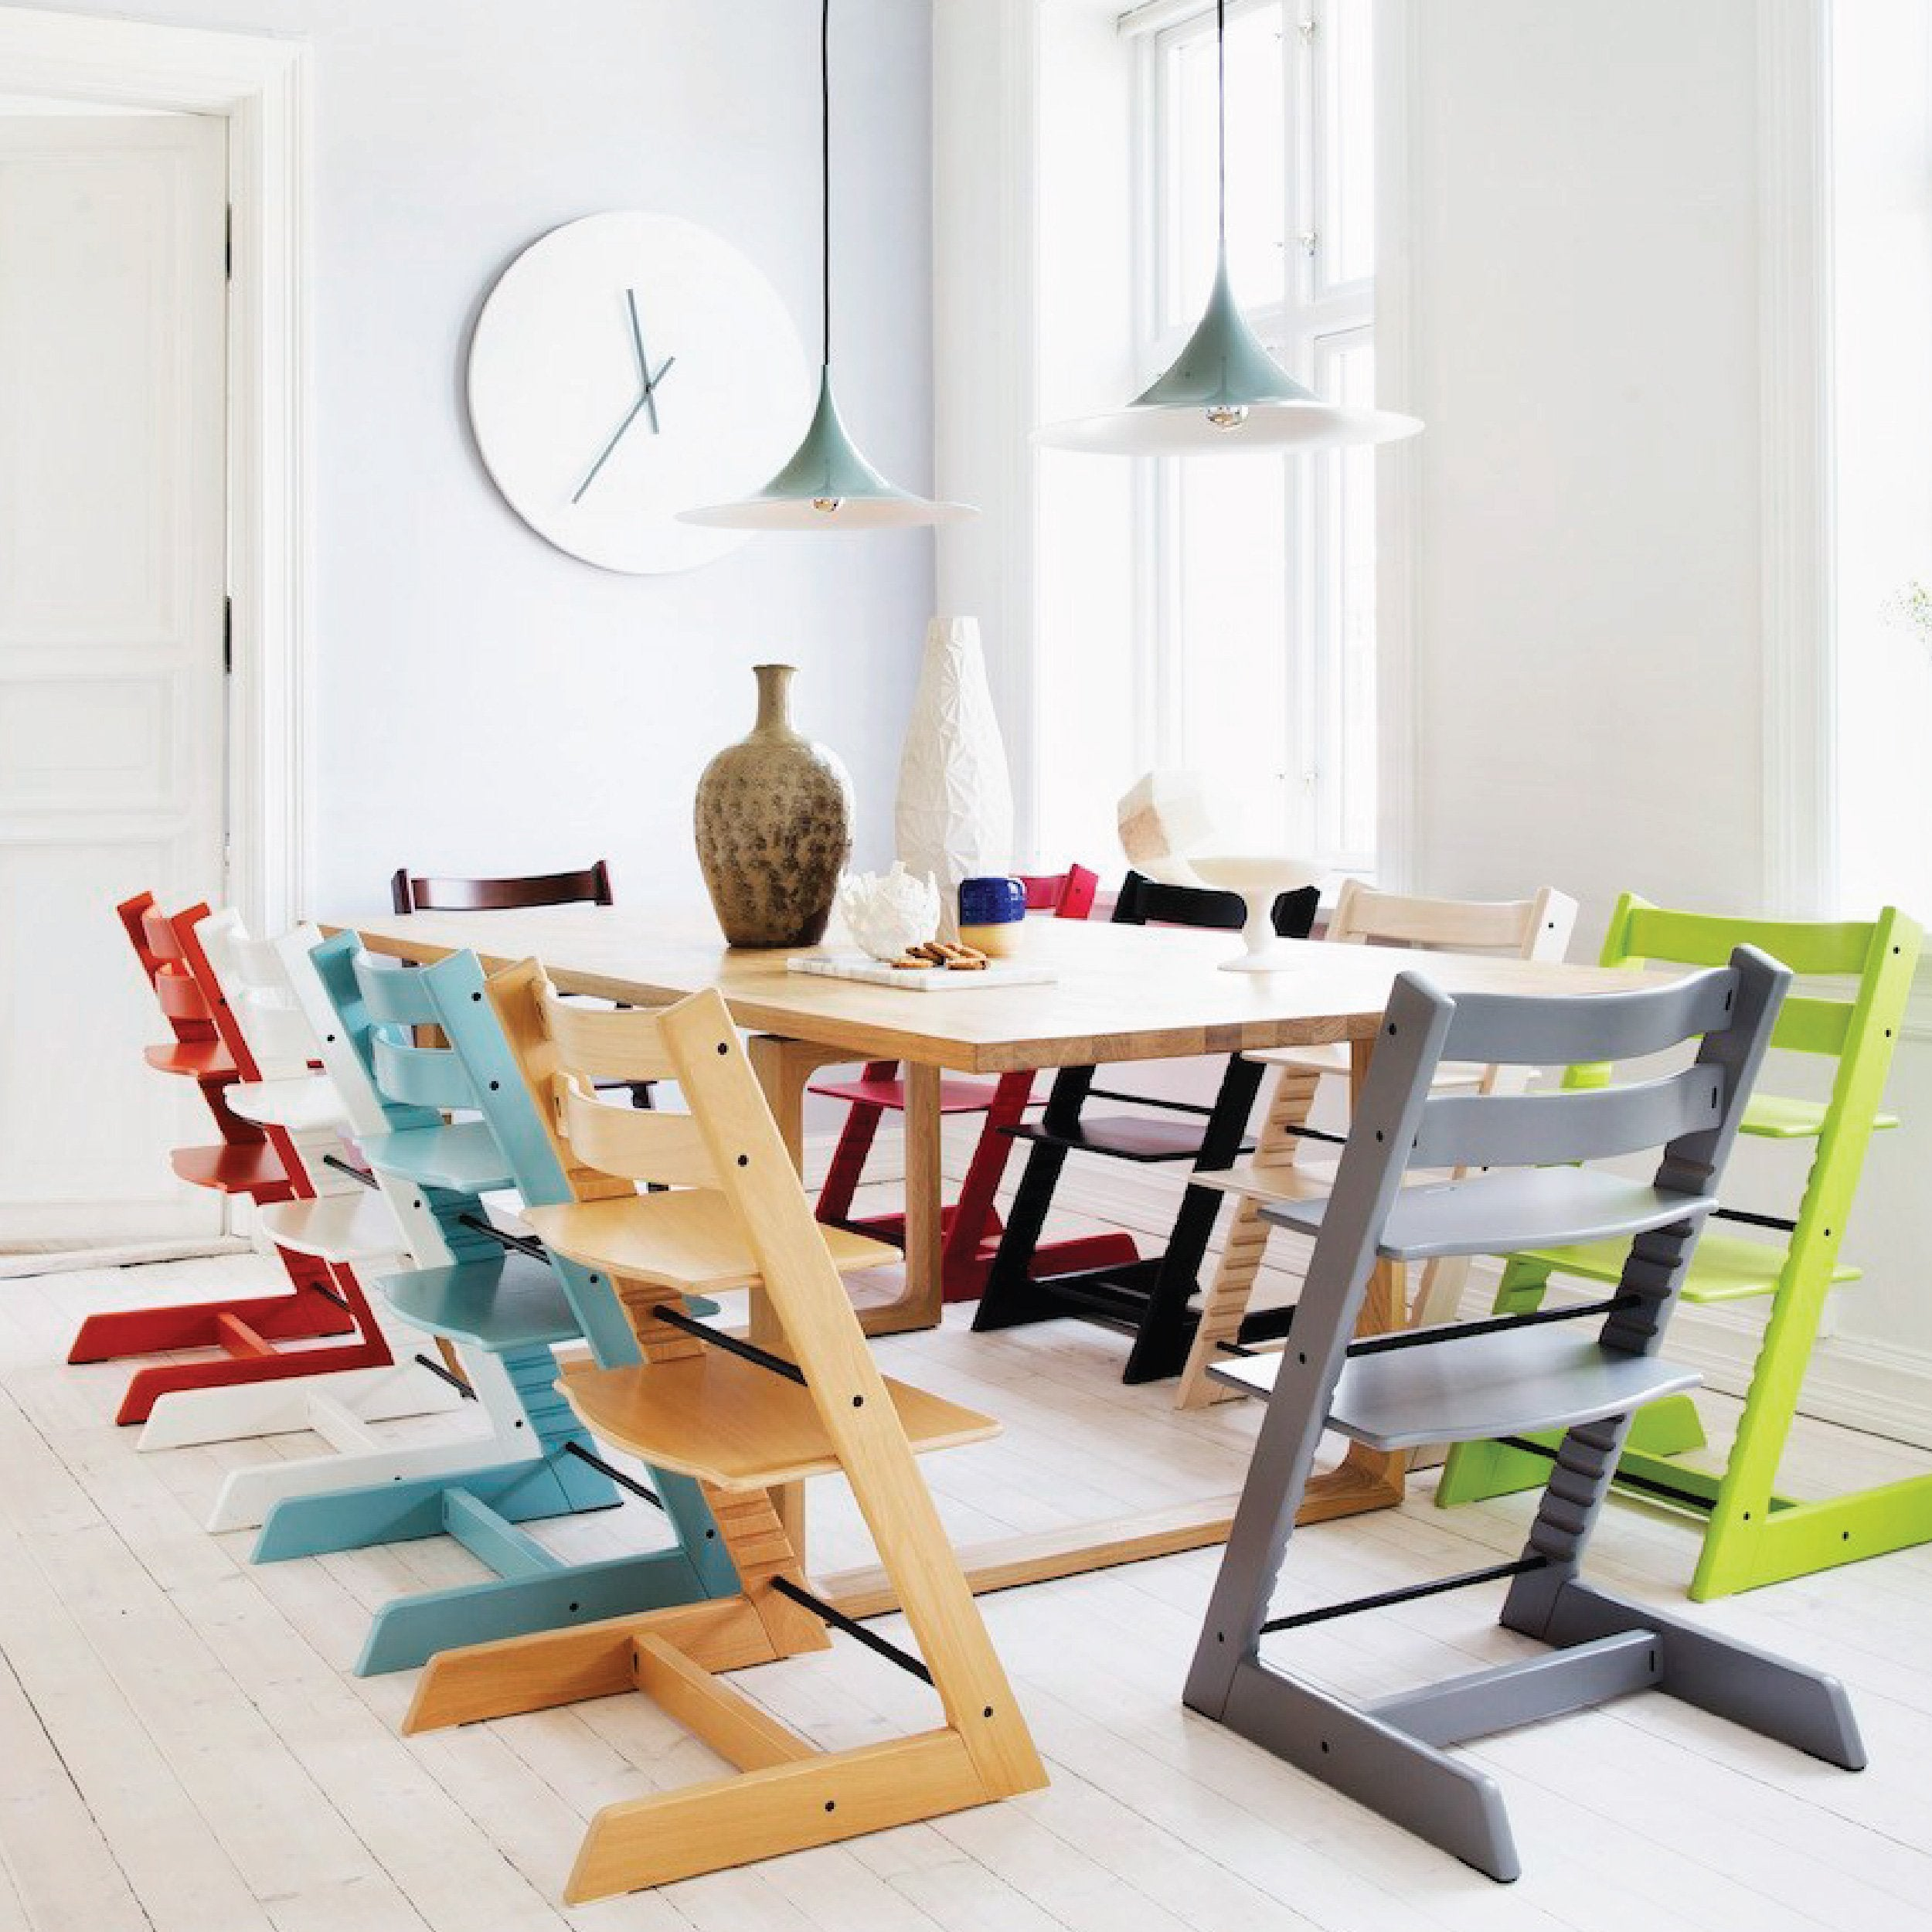 Stokke Tripp Trapp Chair (Natural)